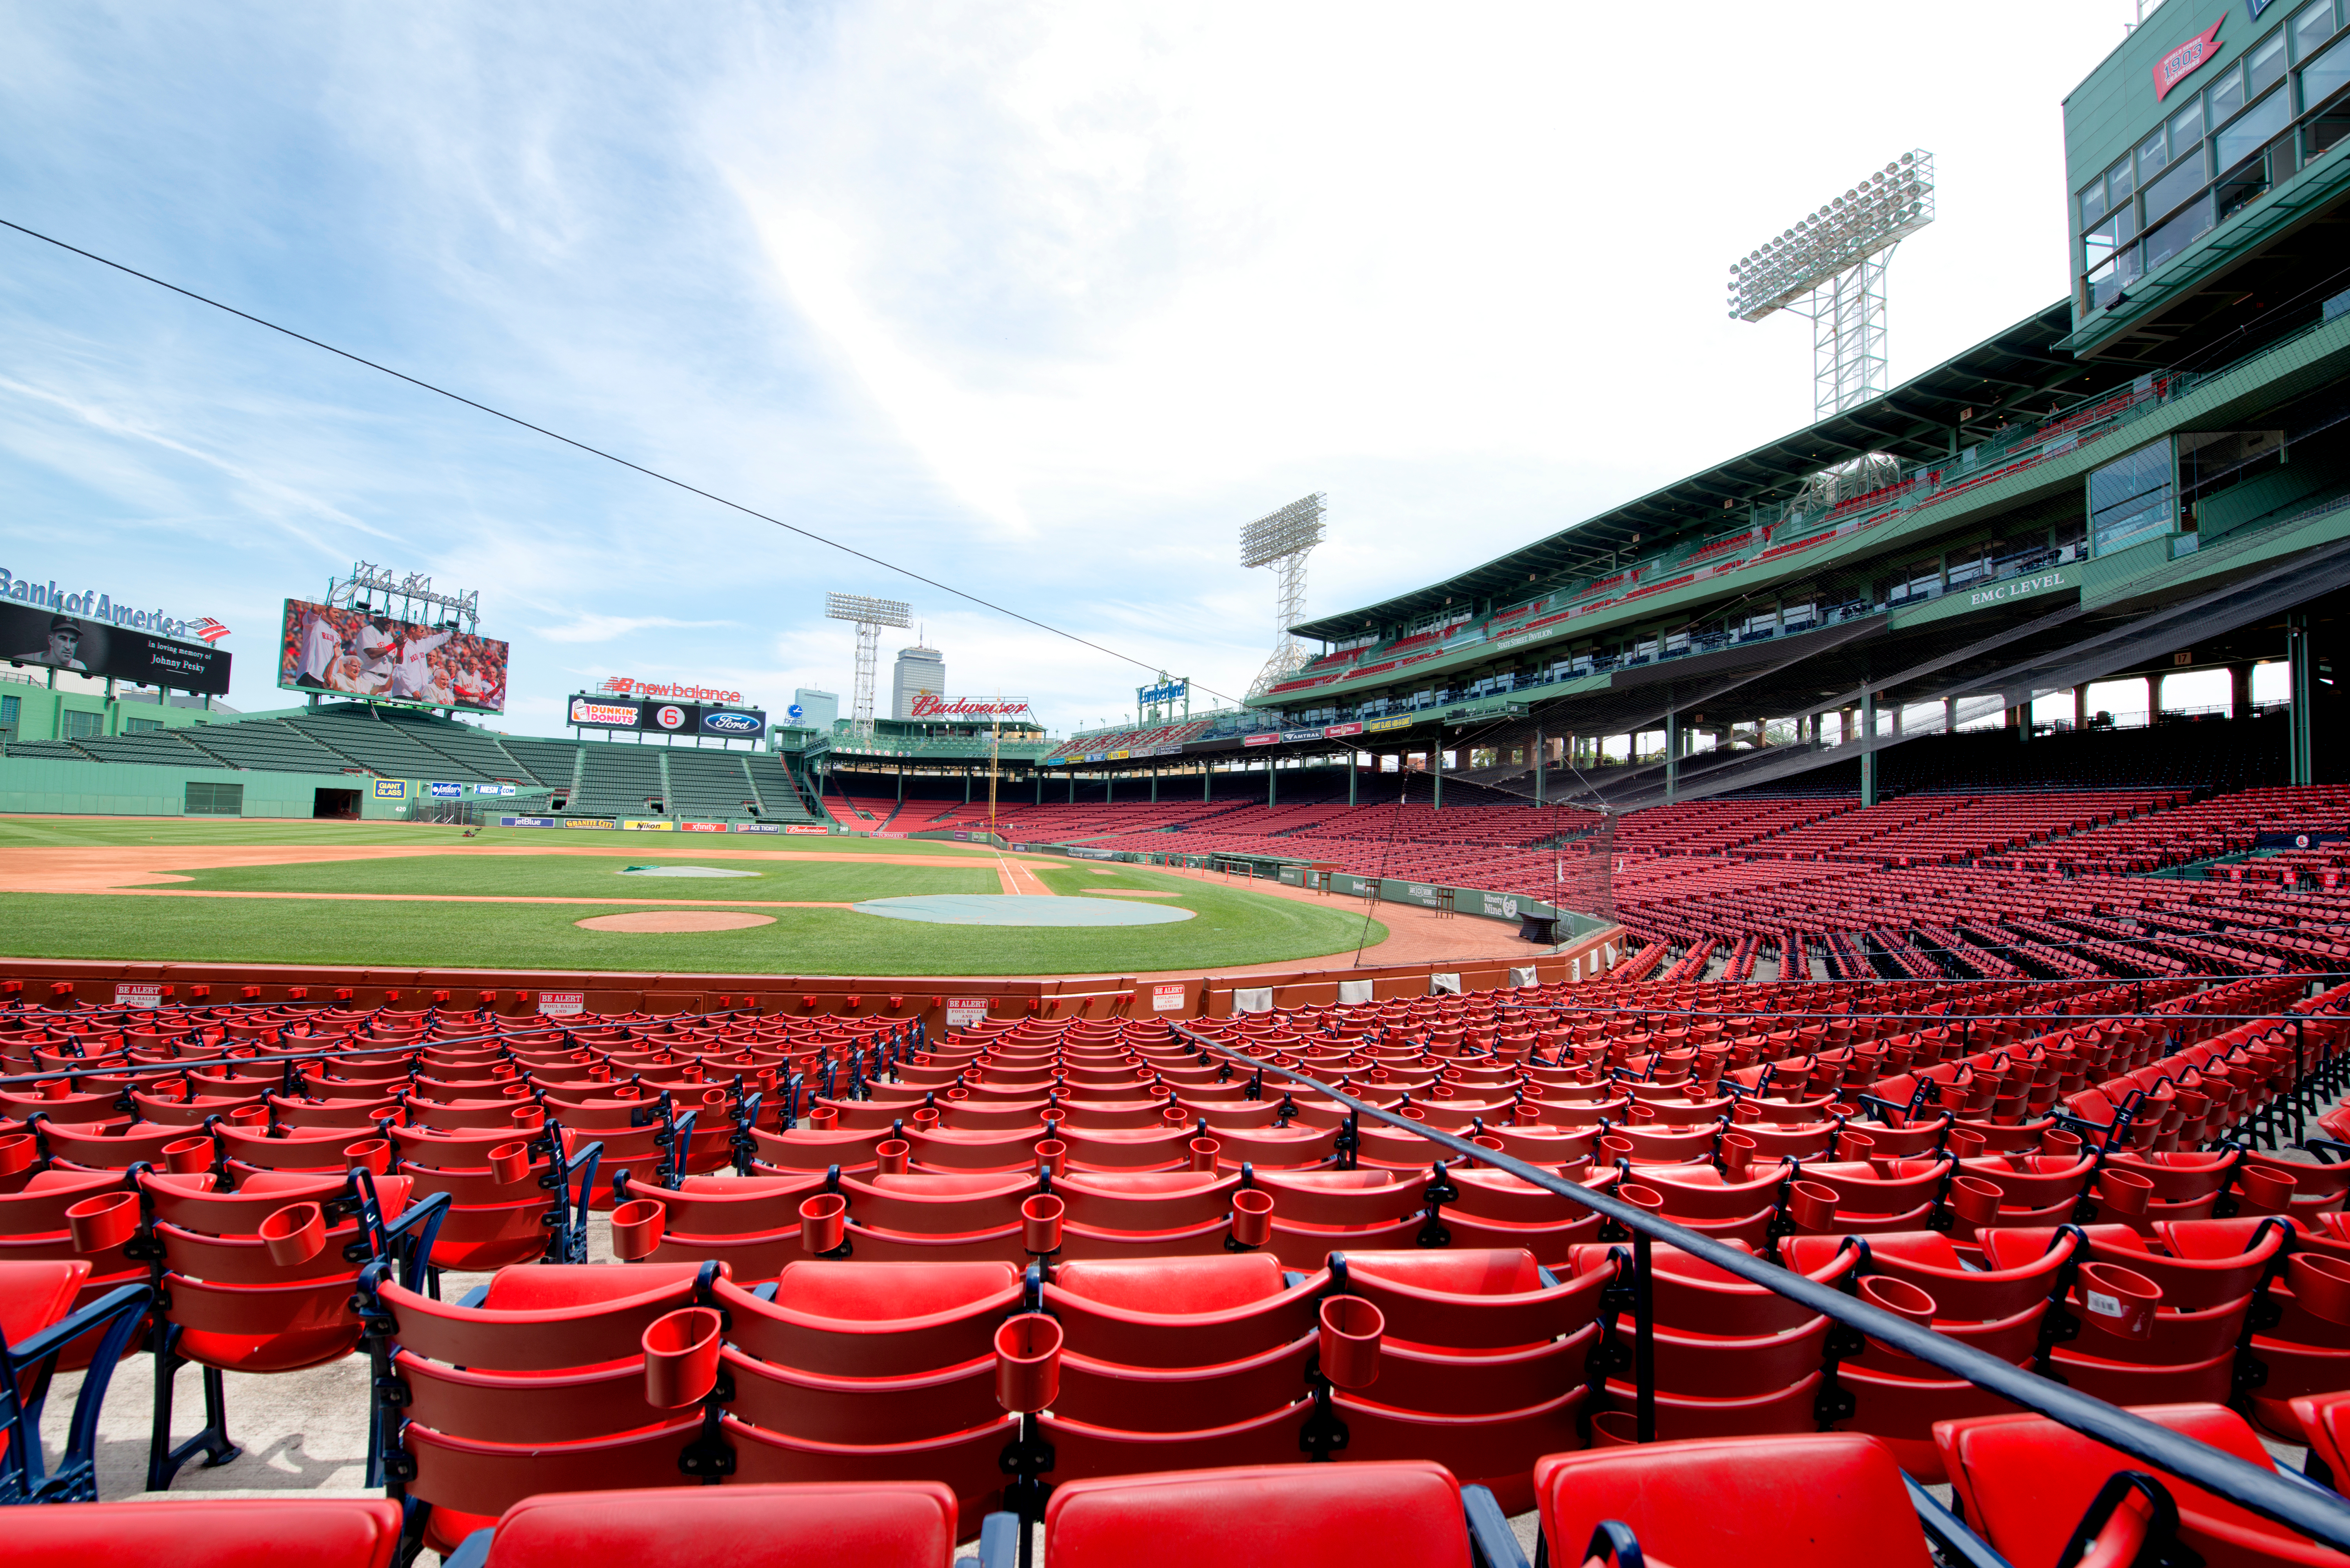 Empty red seats at a large baseball arena.